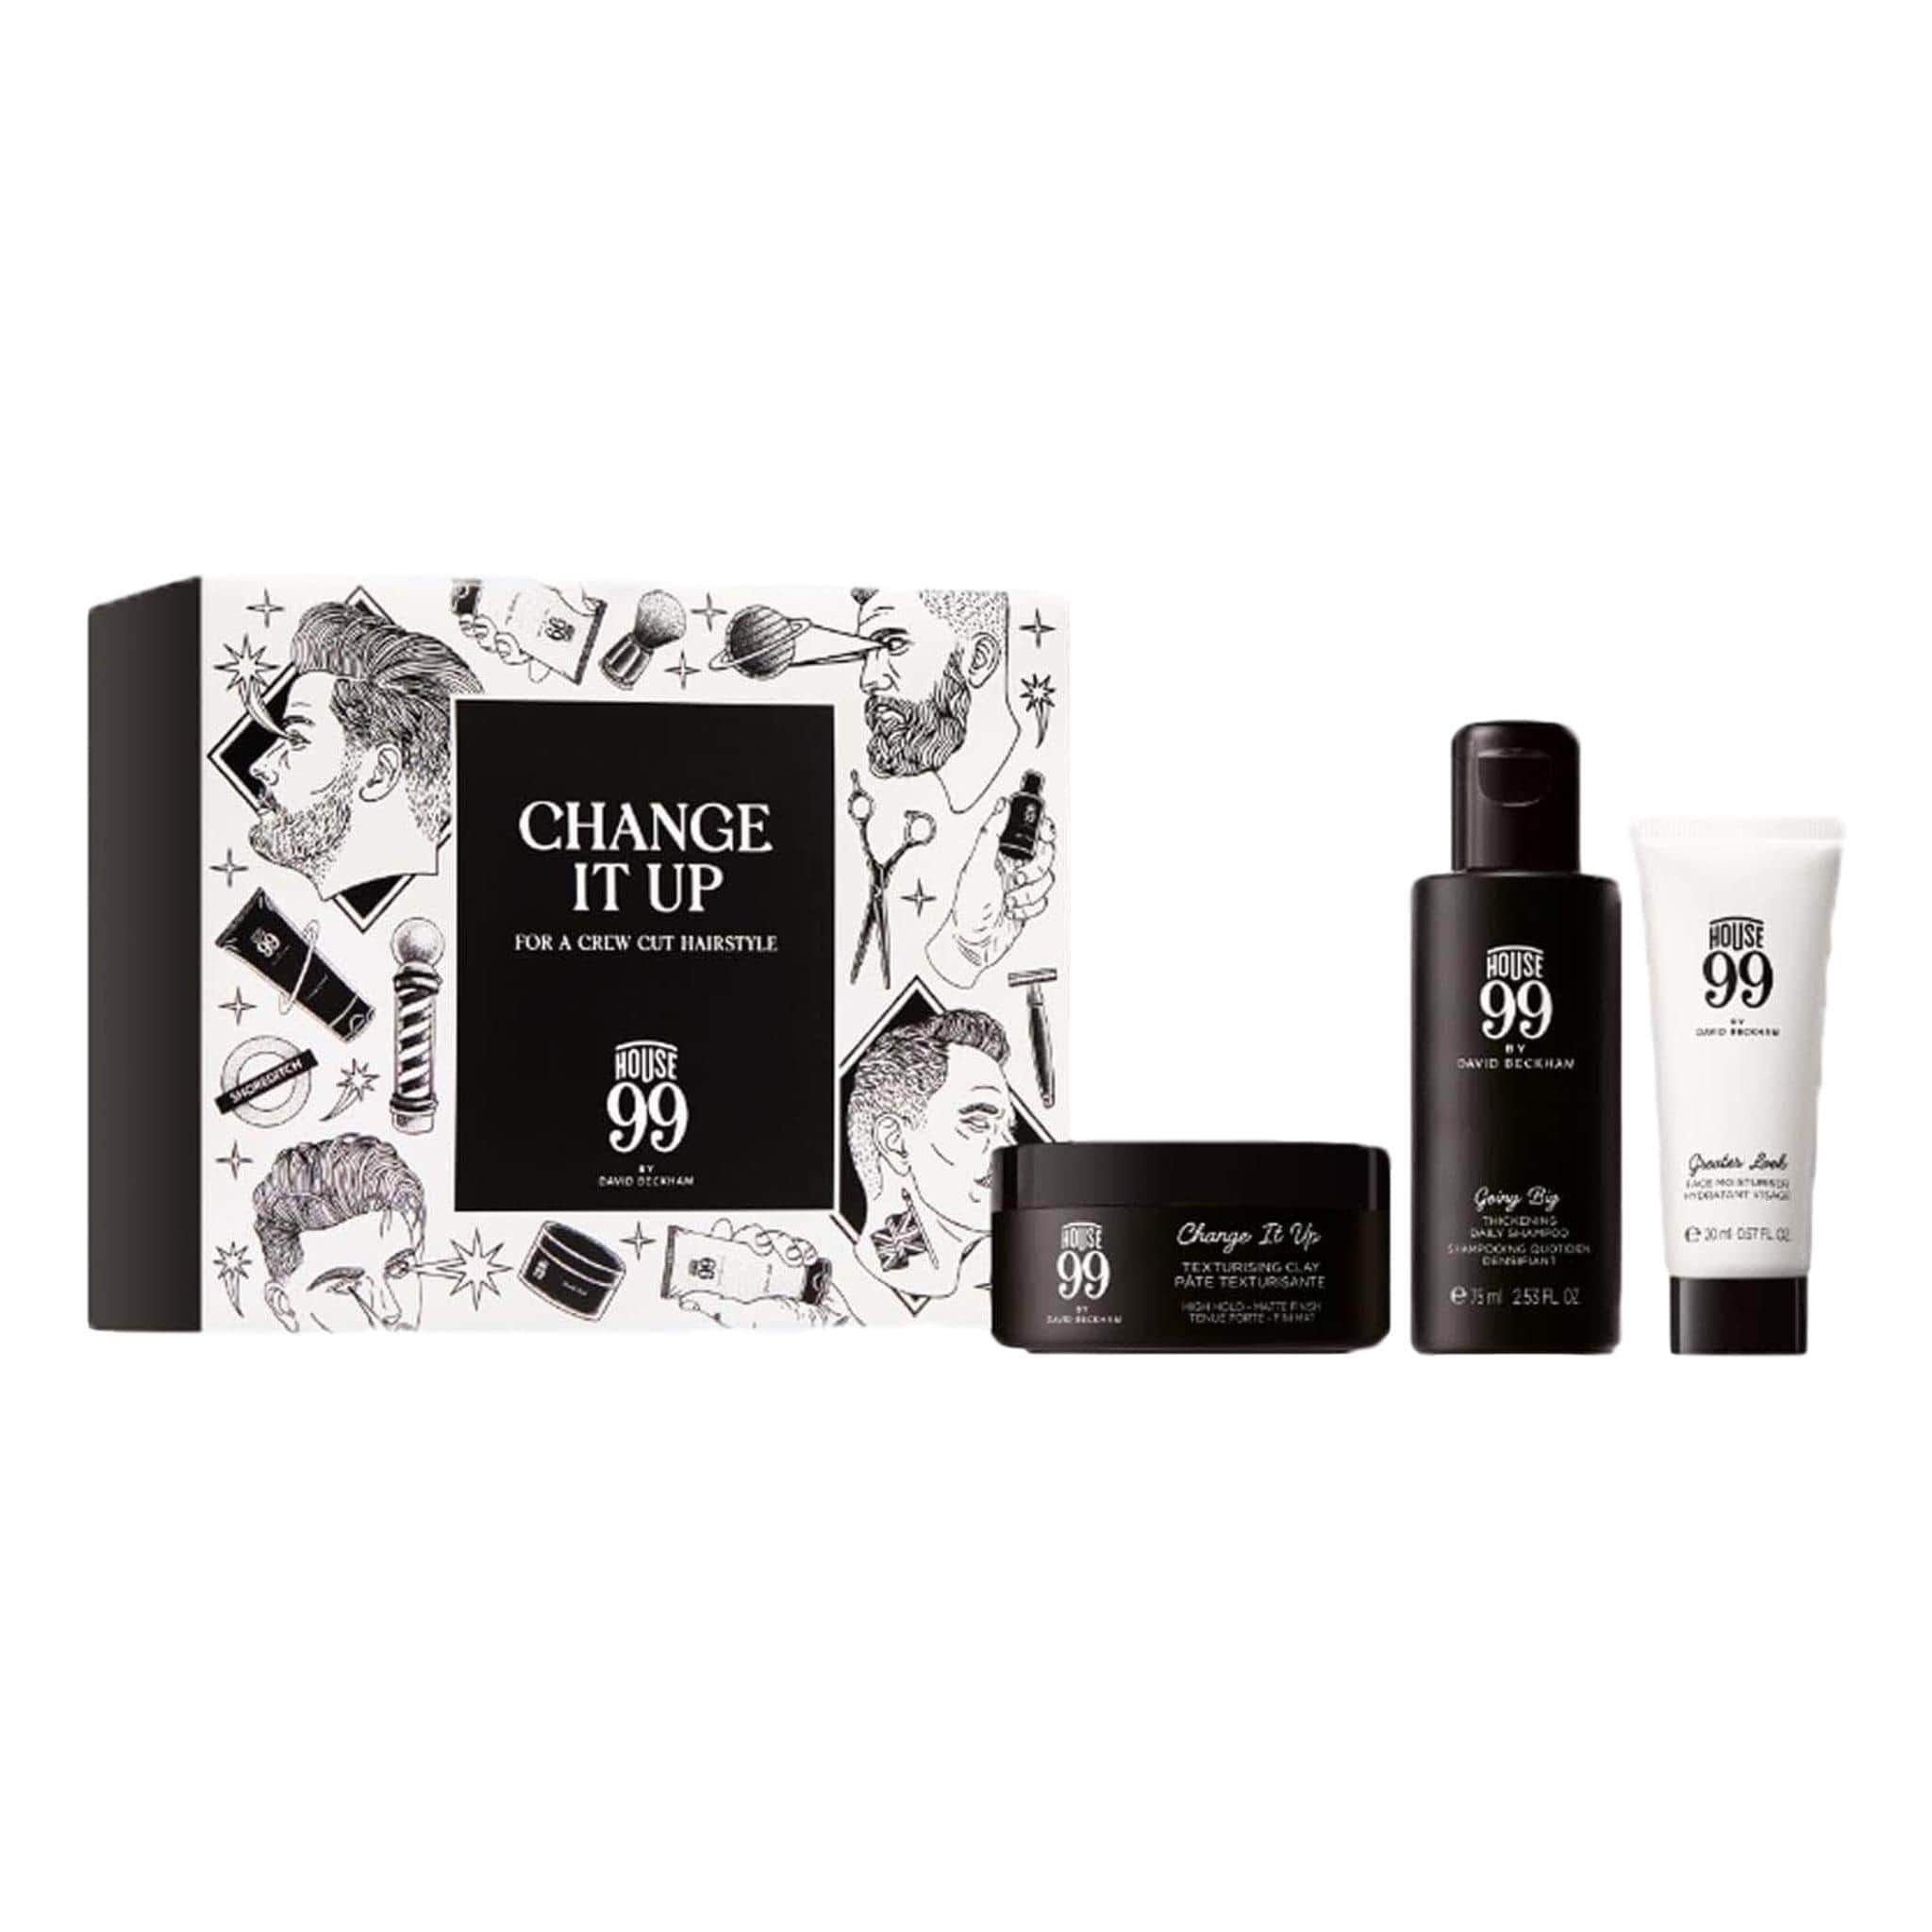 House 99 Change It Up Kit, Face set, London Loves Beauty